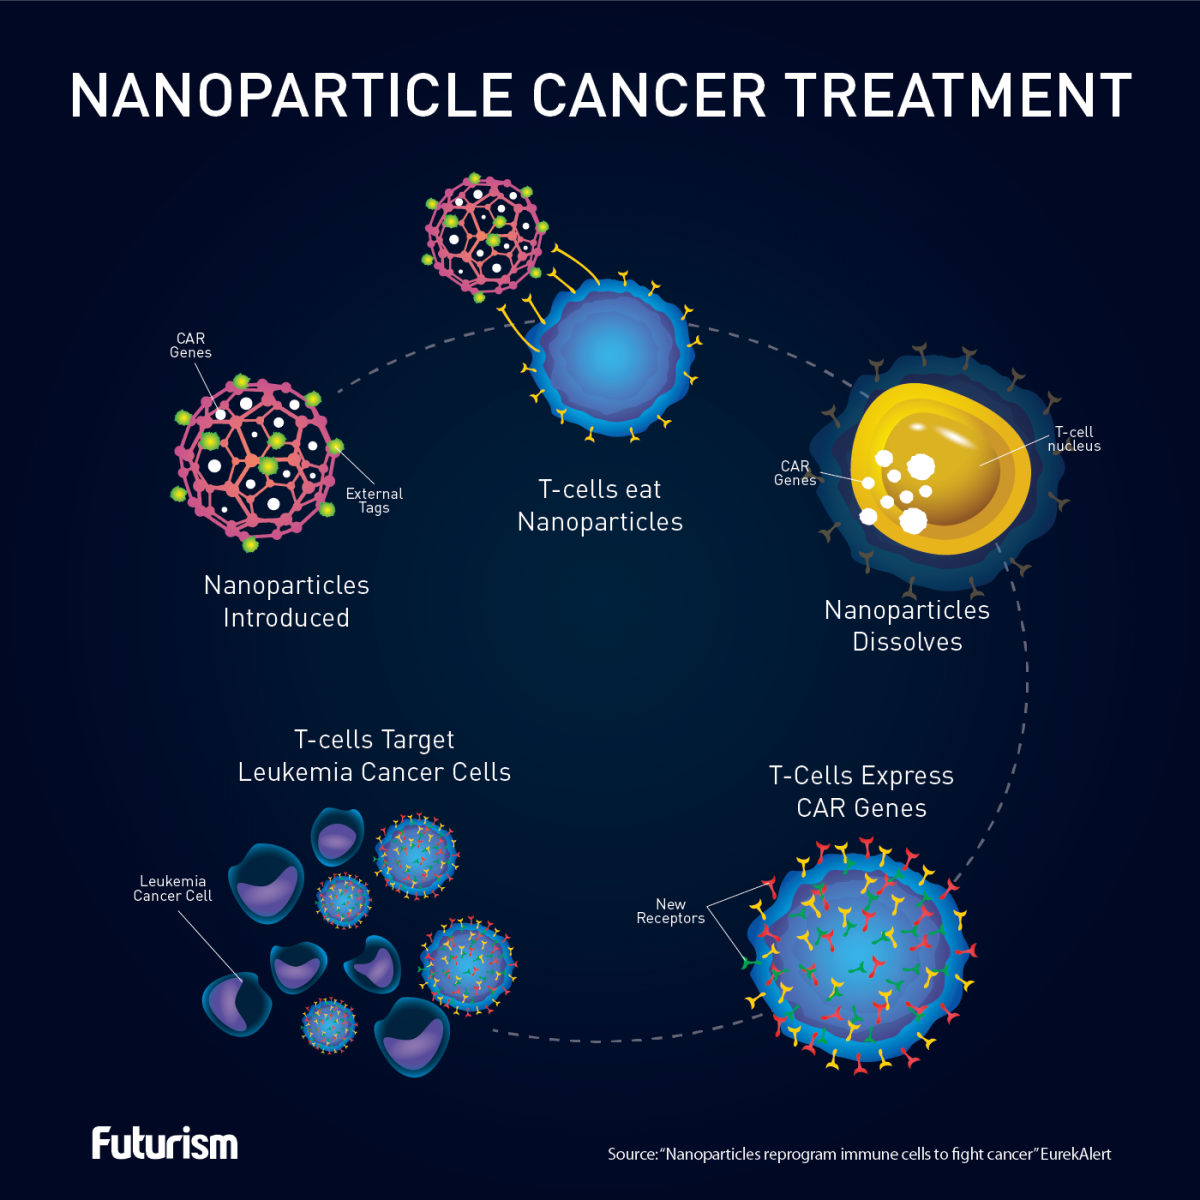 *4* In the Future, We'll Fight Cancer by Reprogramming Our Cells